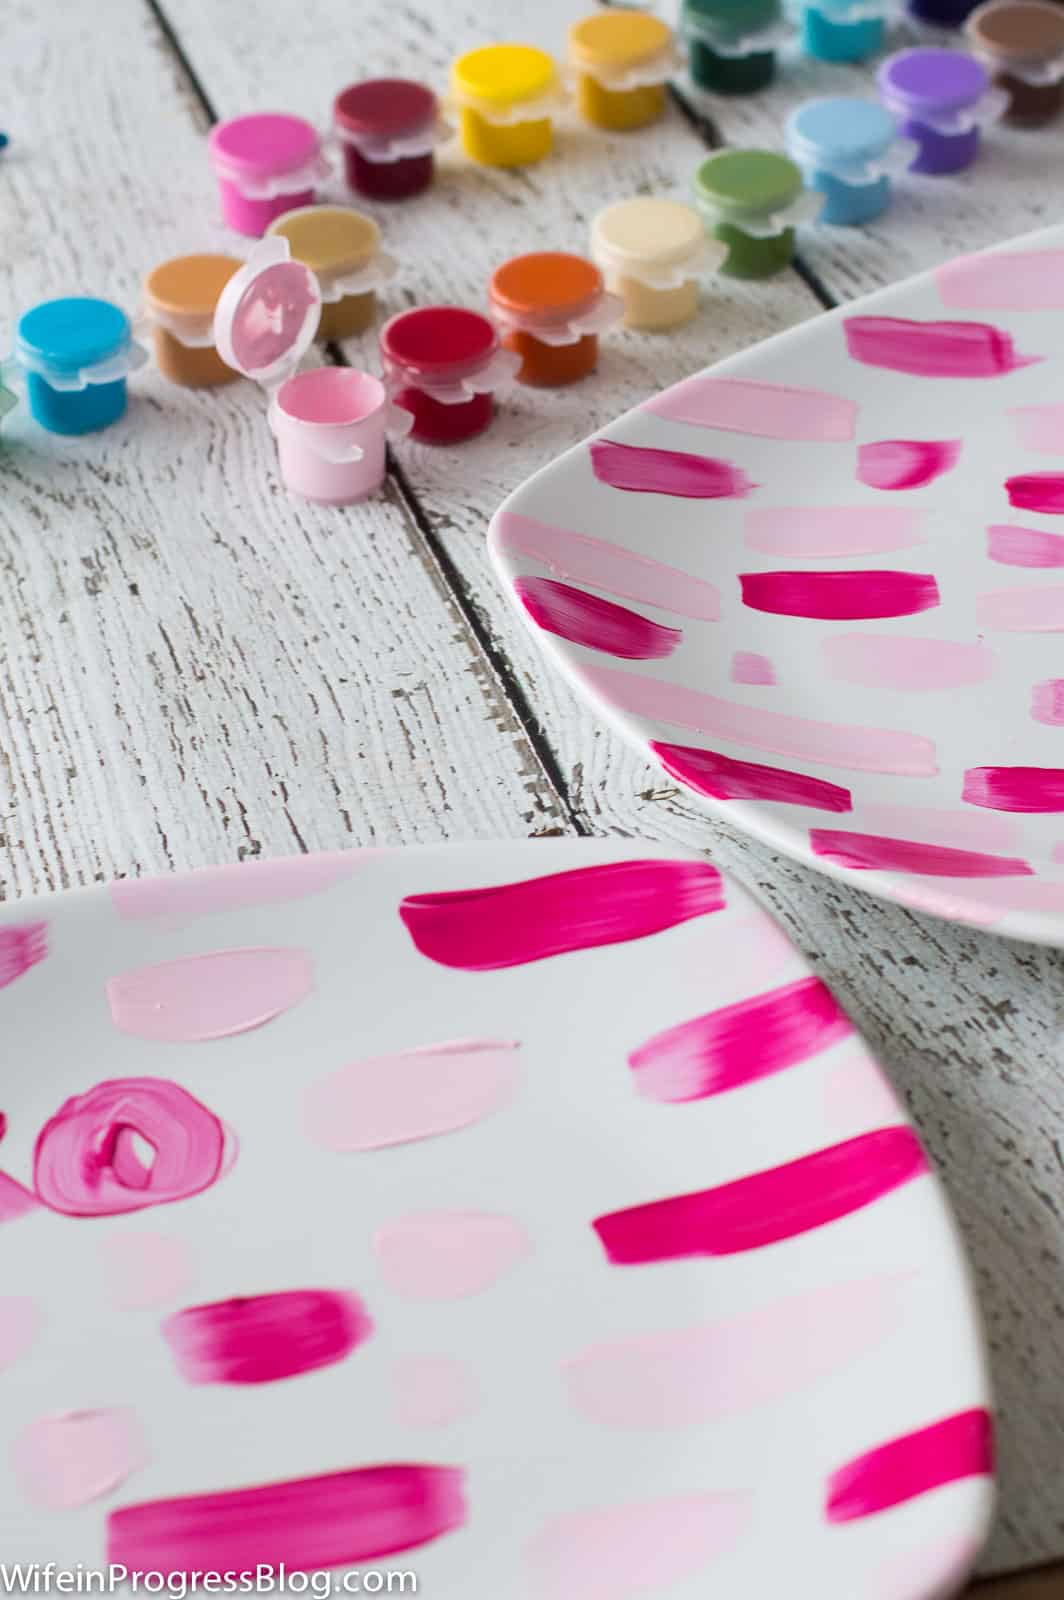 For this painted Valentine's plate project, I used enamel paint in various shades of pink